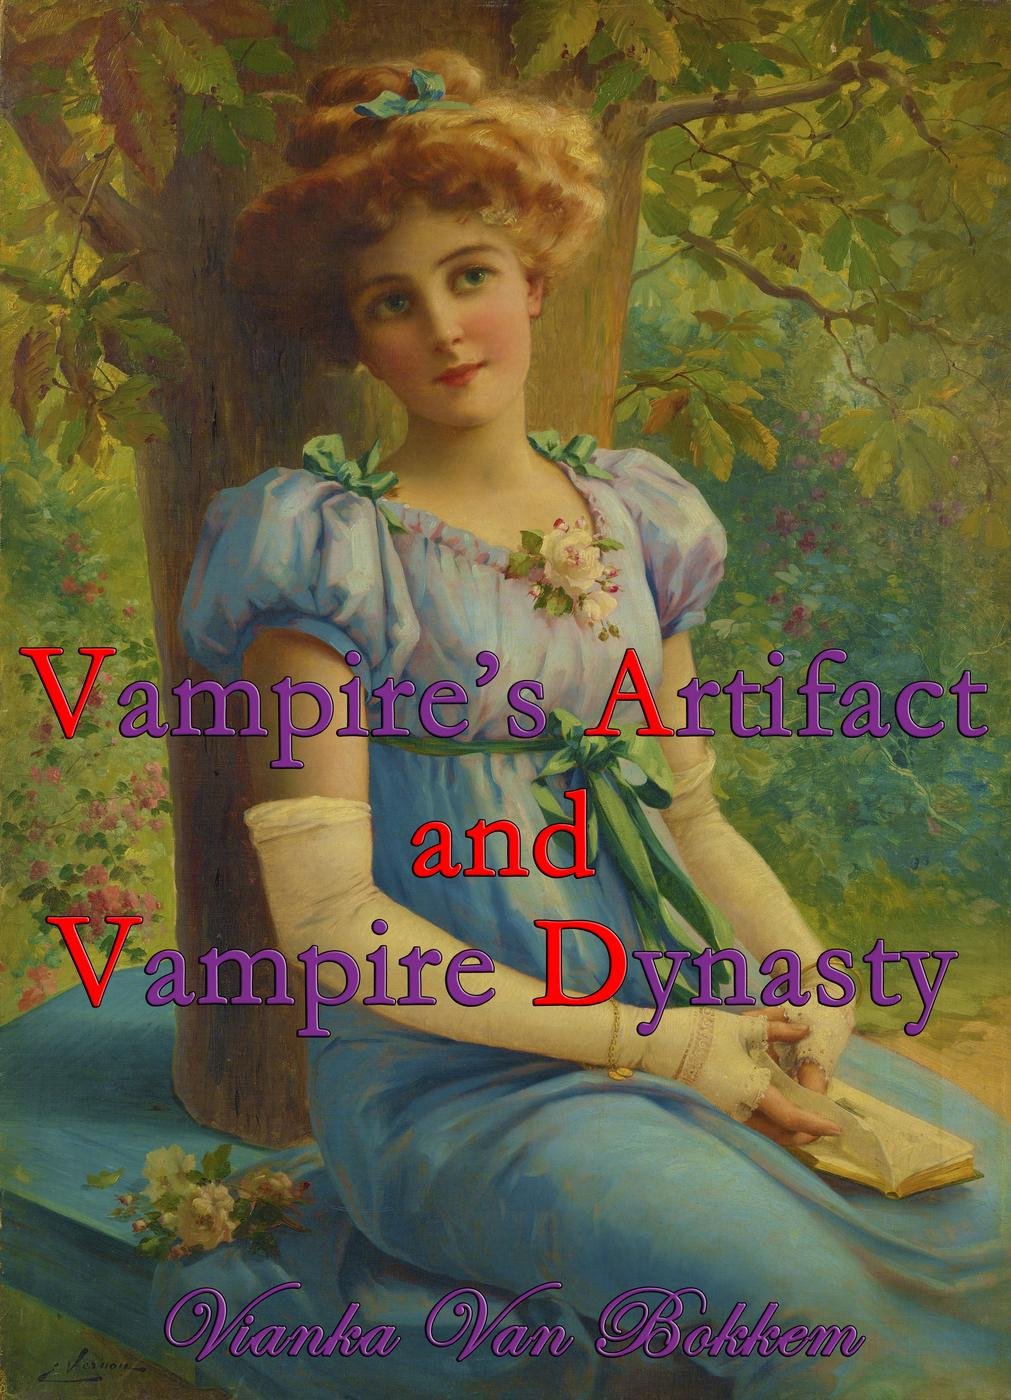 Vampire's Artifact and Vampire Dynasty